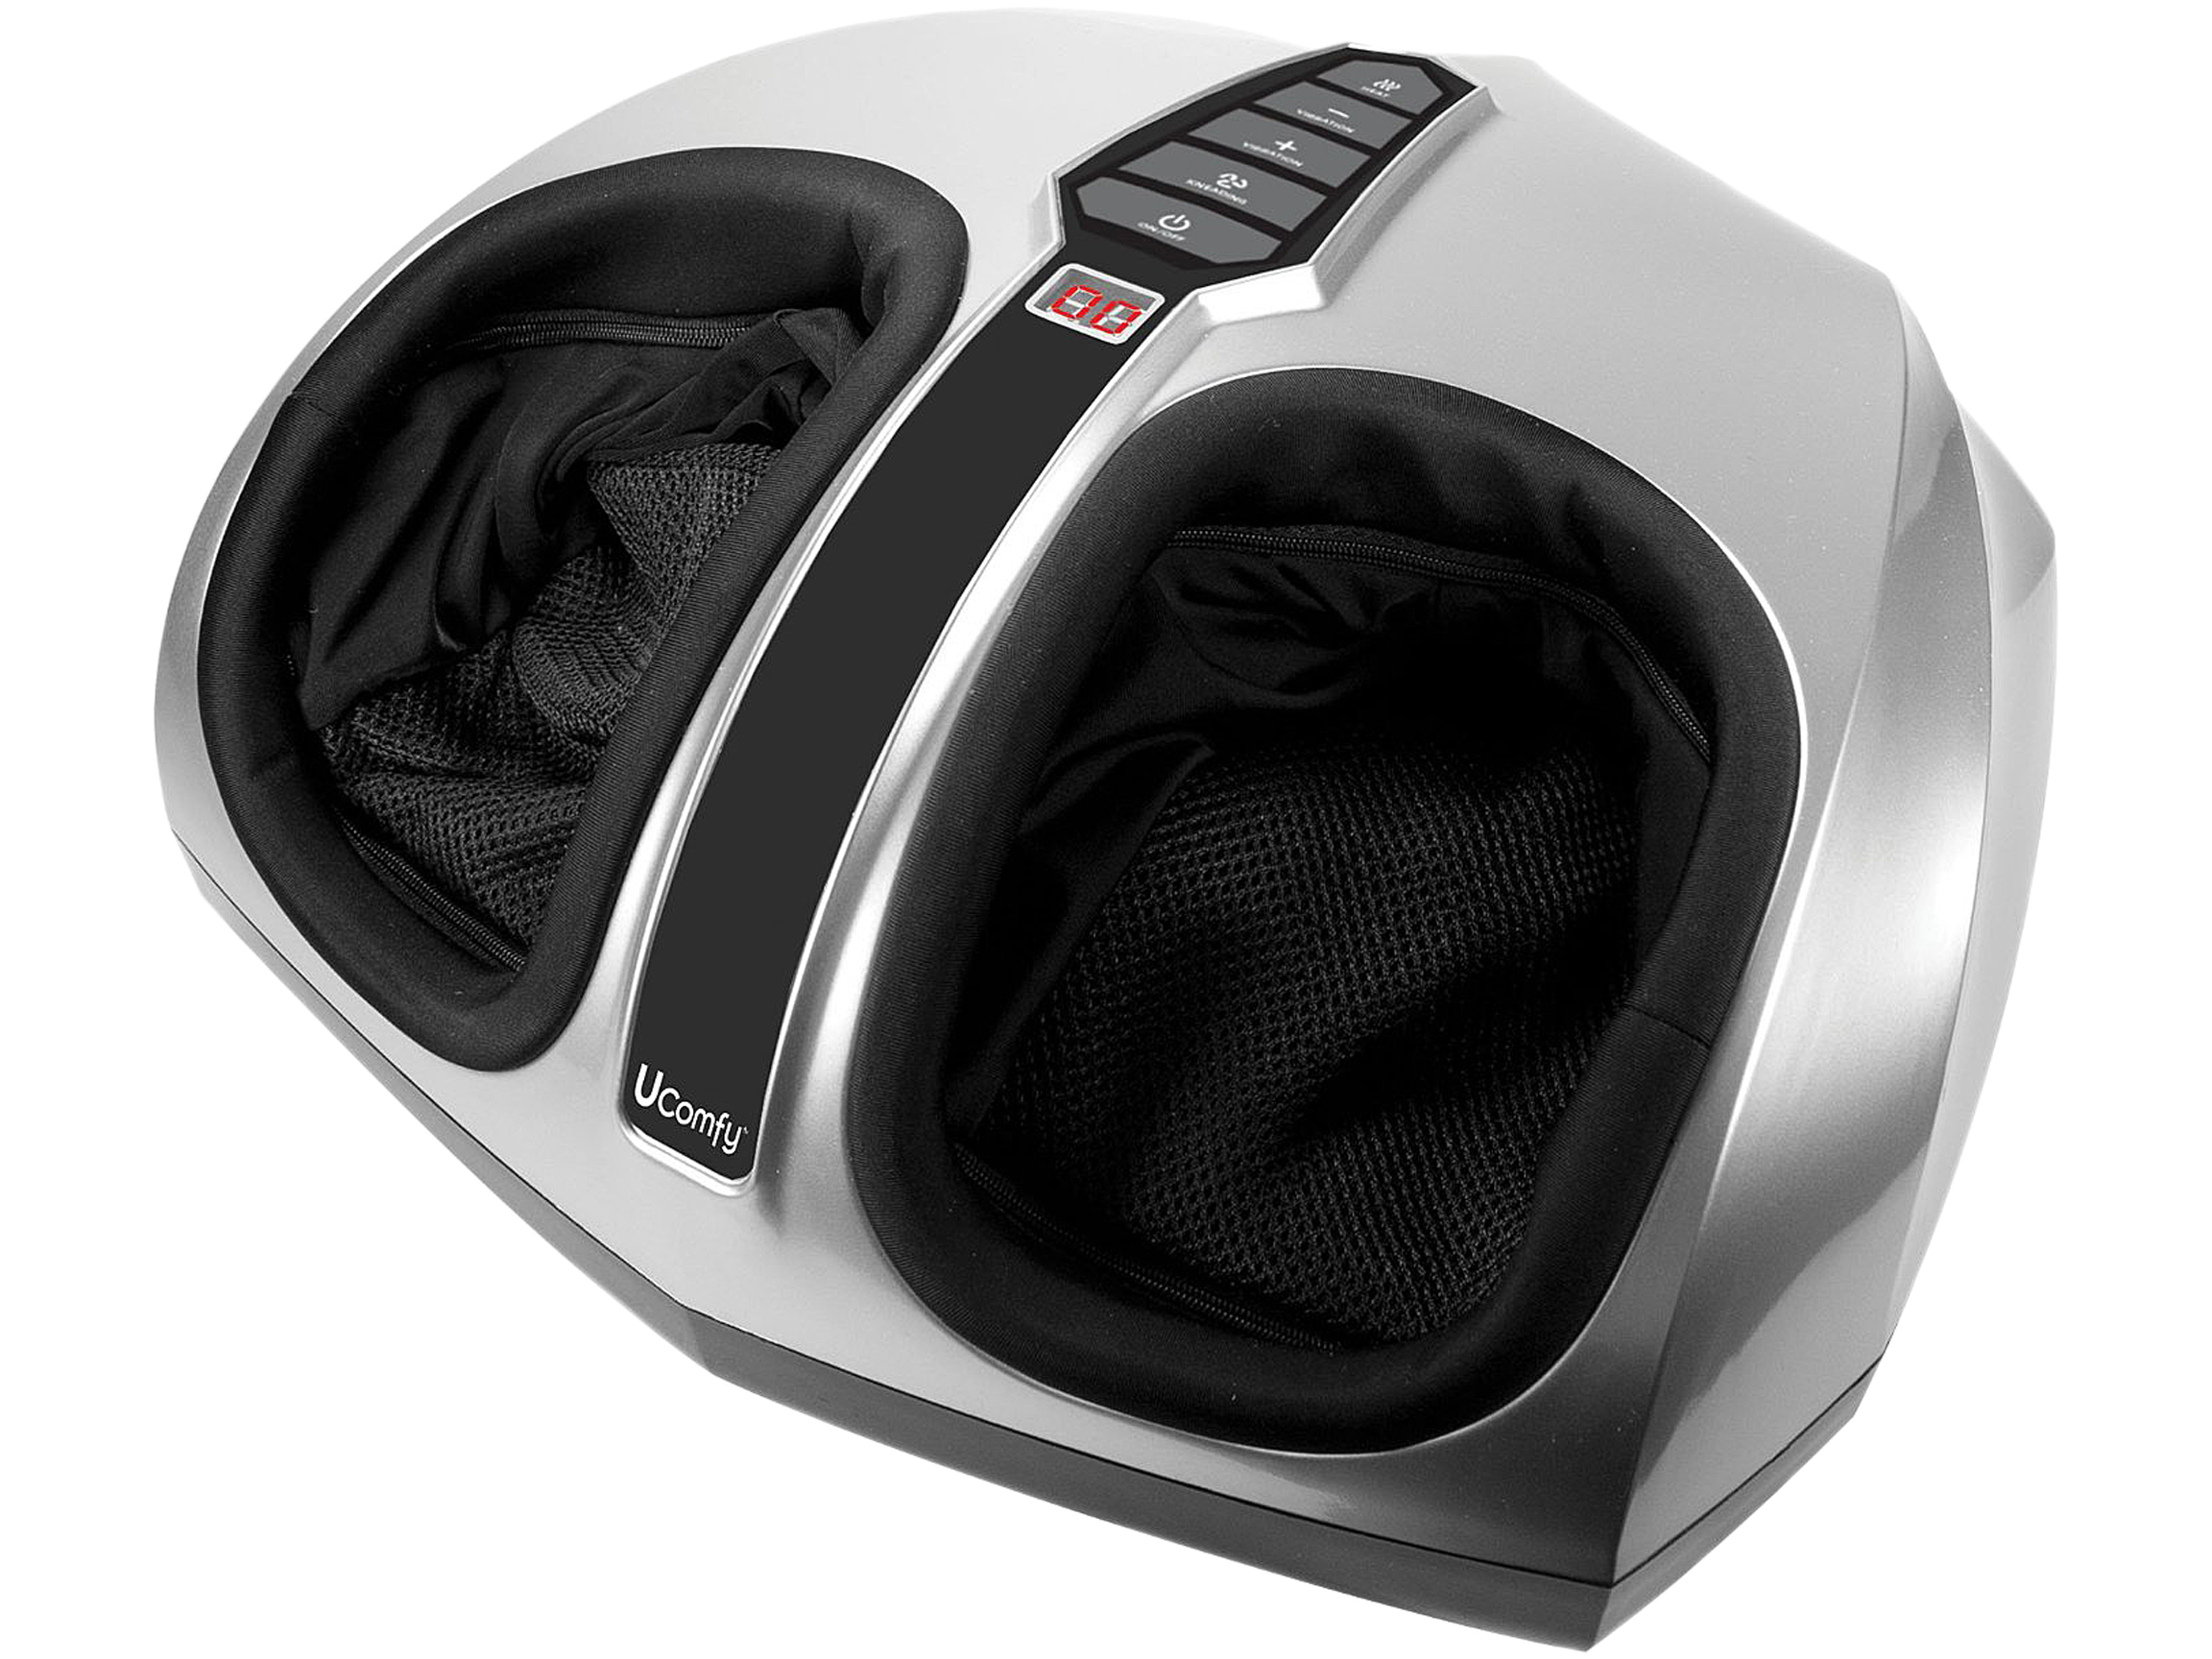 Ucomfy 9209 Shiatsu Foot Massager